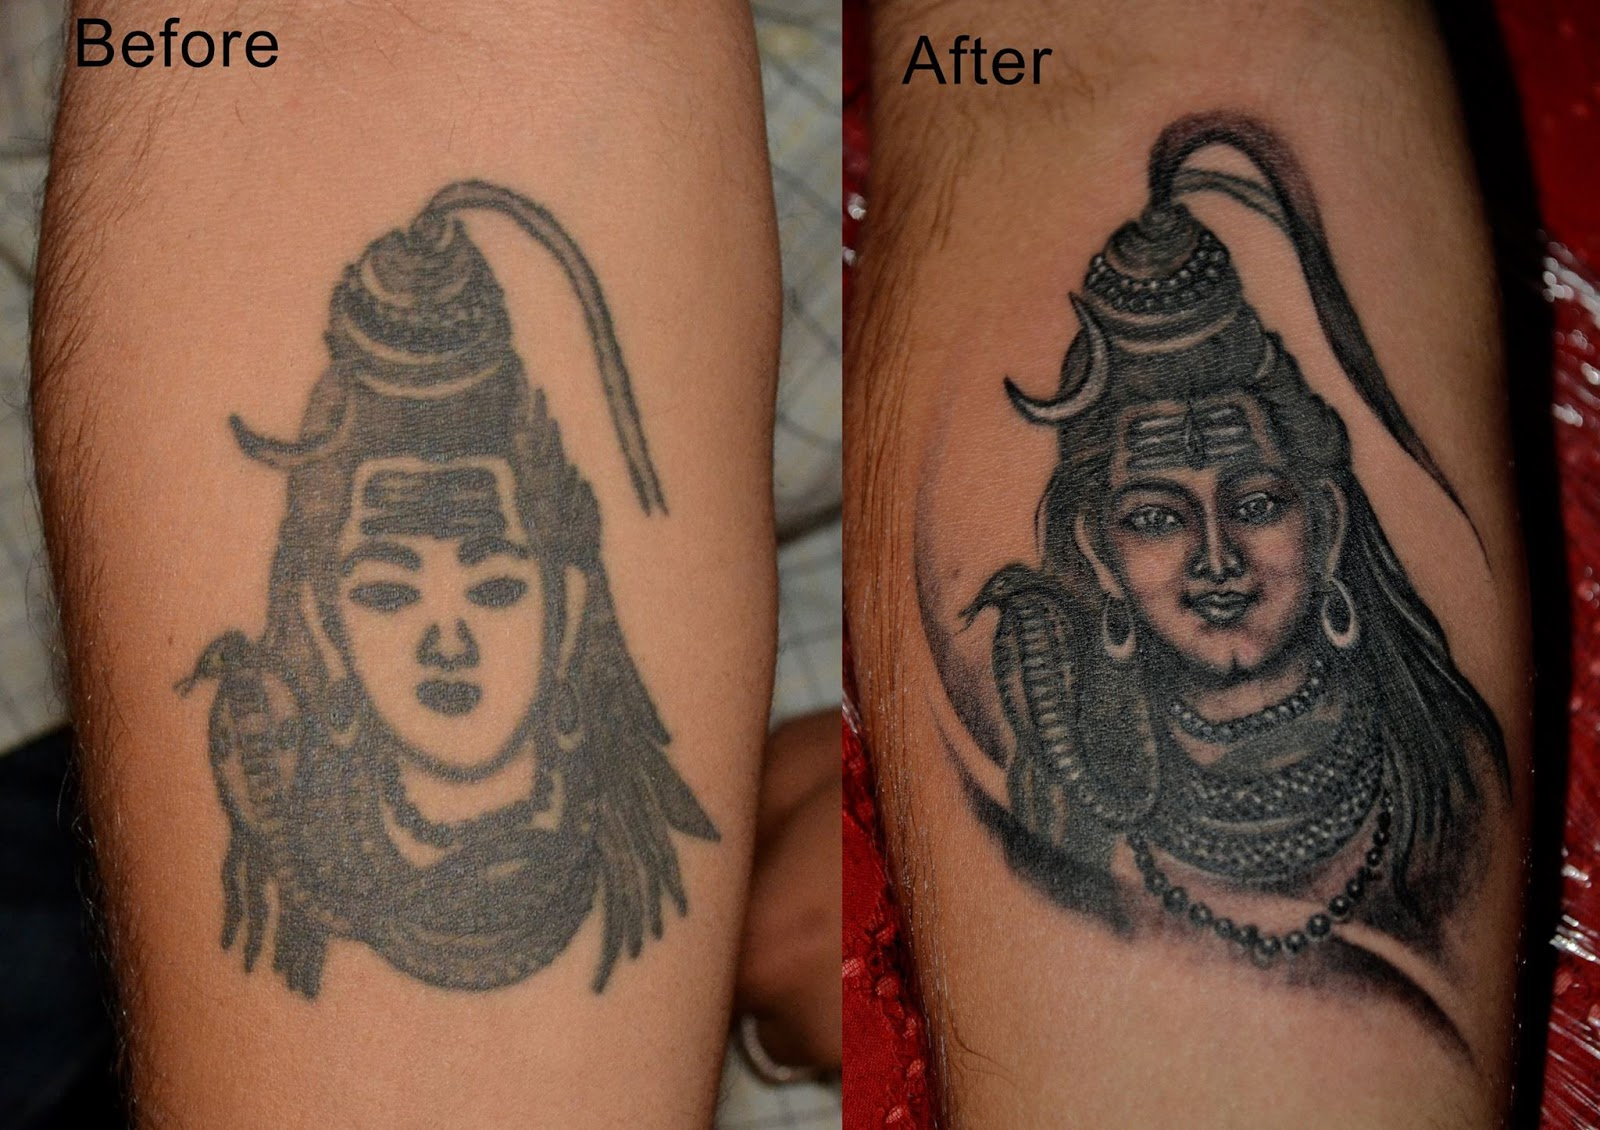 Best before after tattoo by aaryans tattoos in ahmedabad for Inkslingrz professional tattoos and body piercing